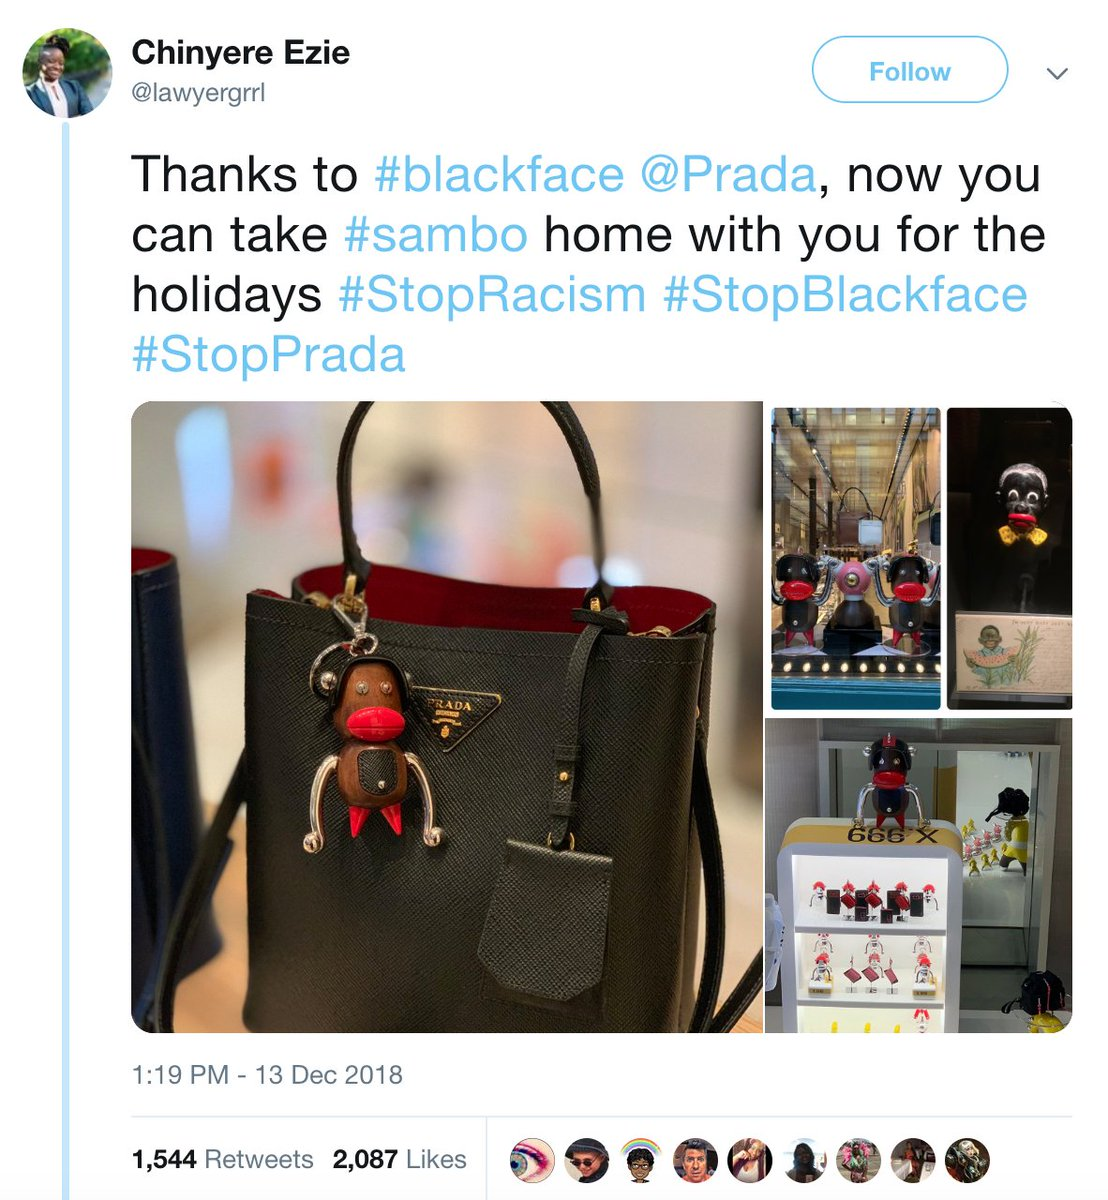 88c607ef44 Prada is facing backlash after the company was accused of using blackface  imagery in its new collection. The luxury brand issued a statement saying  it